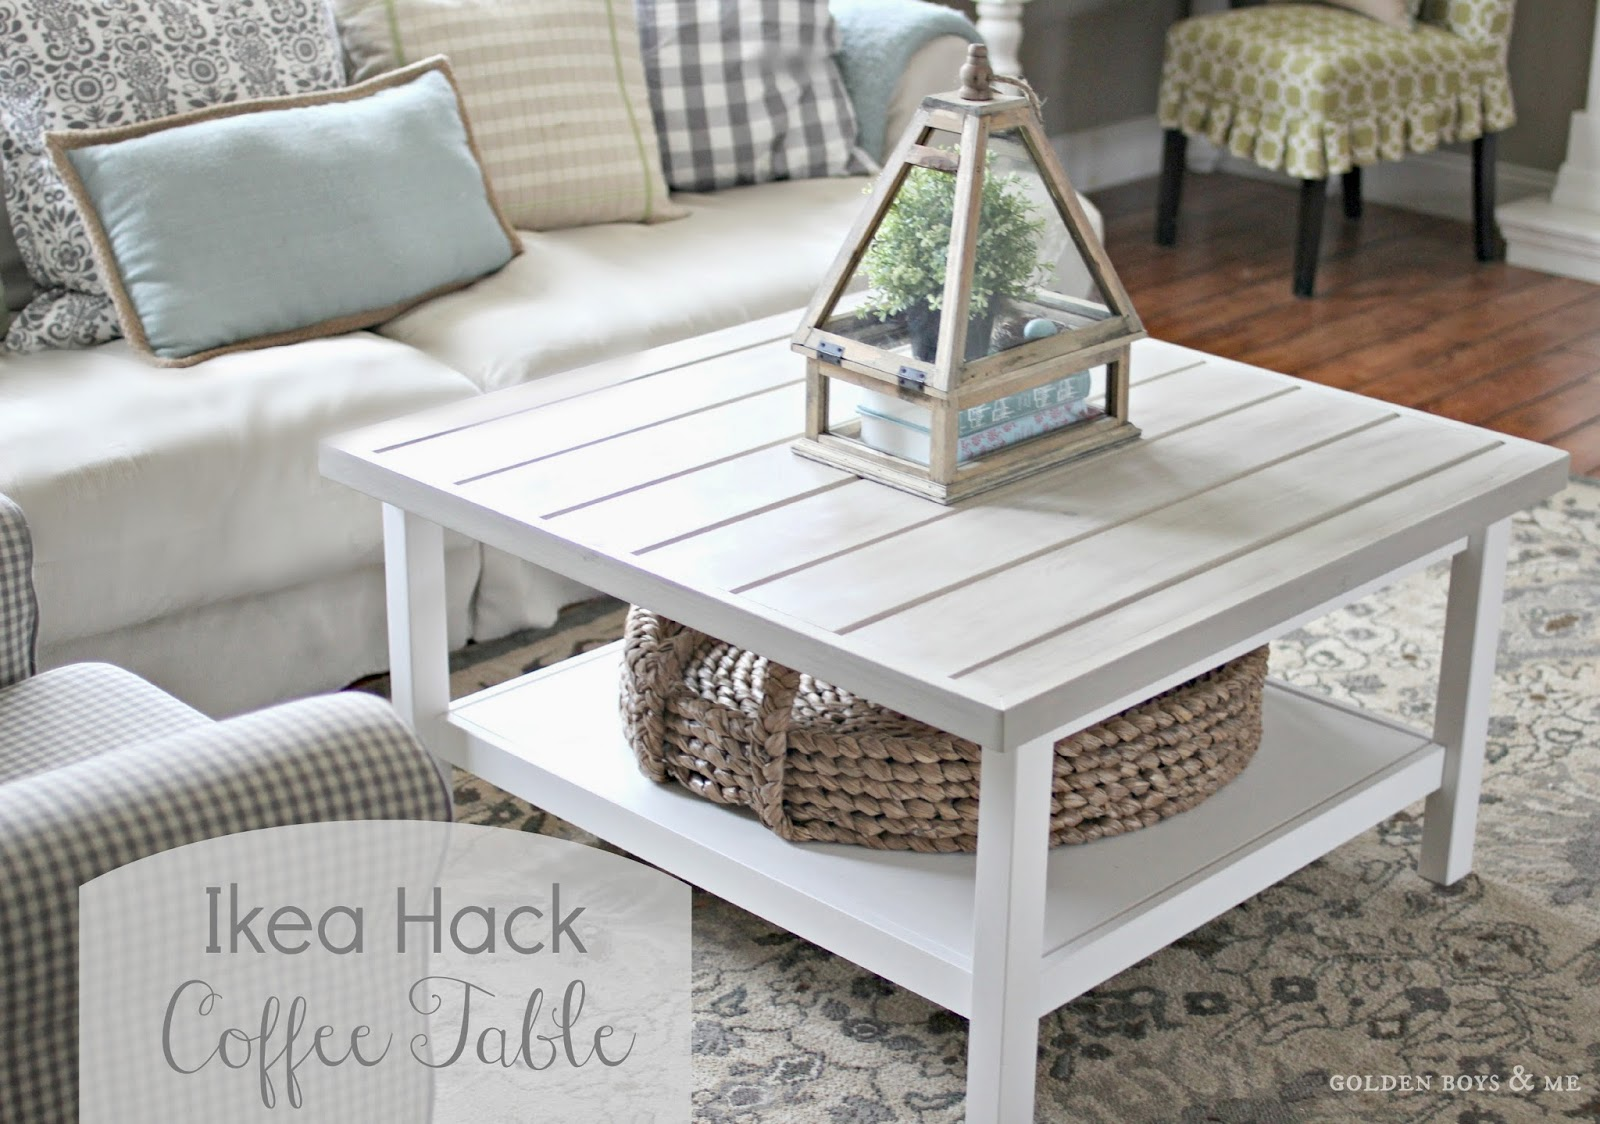 Ikea Coffee Table In Image of Exterior